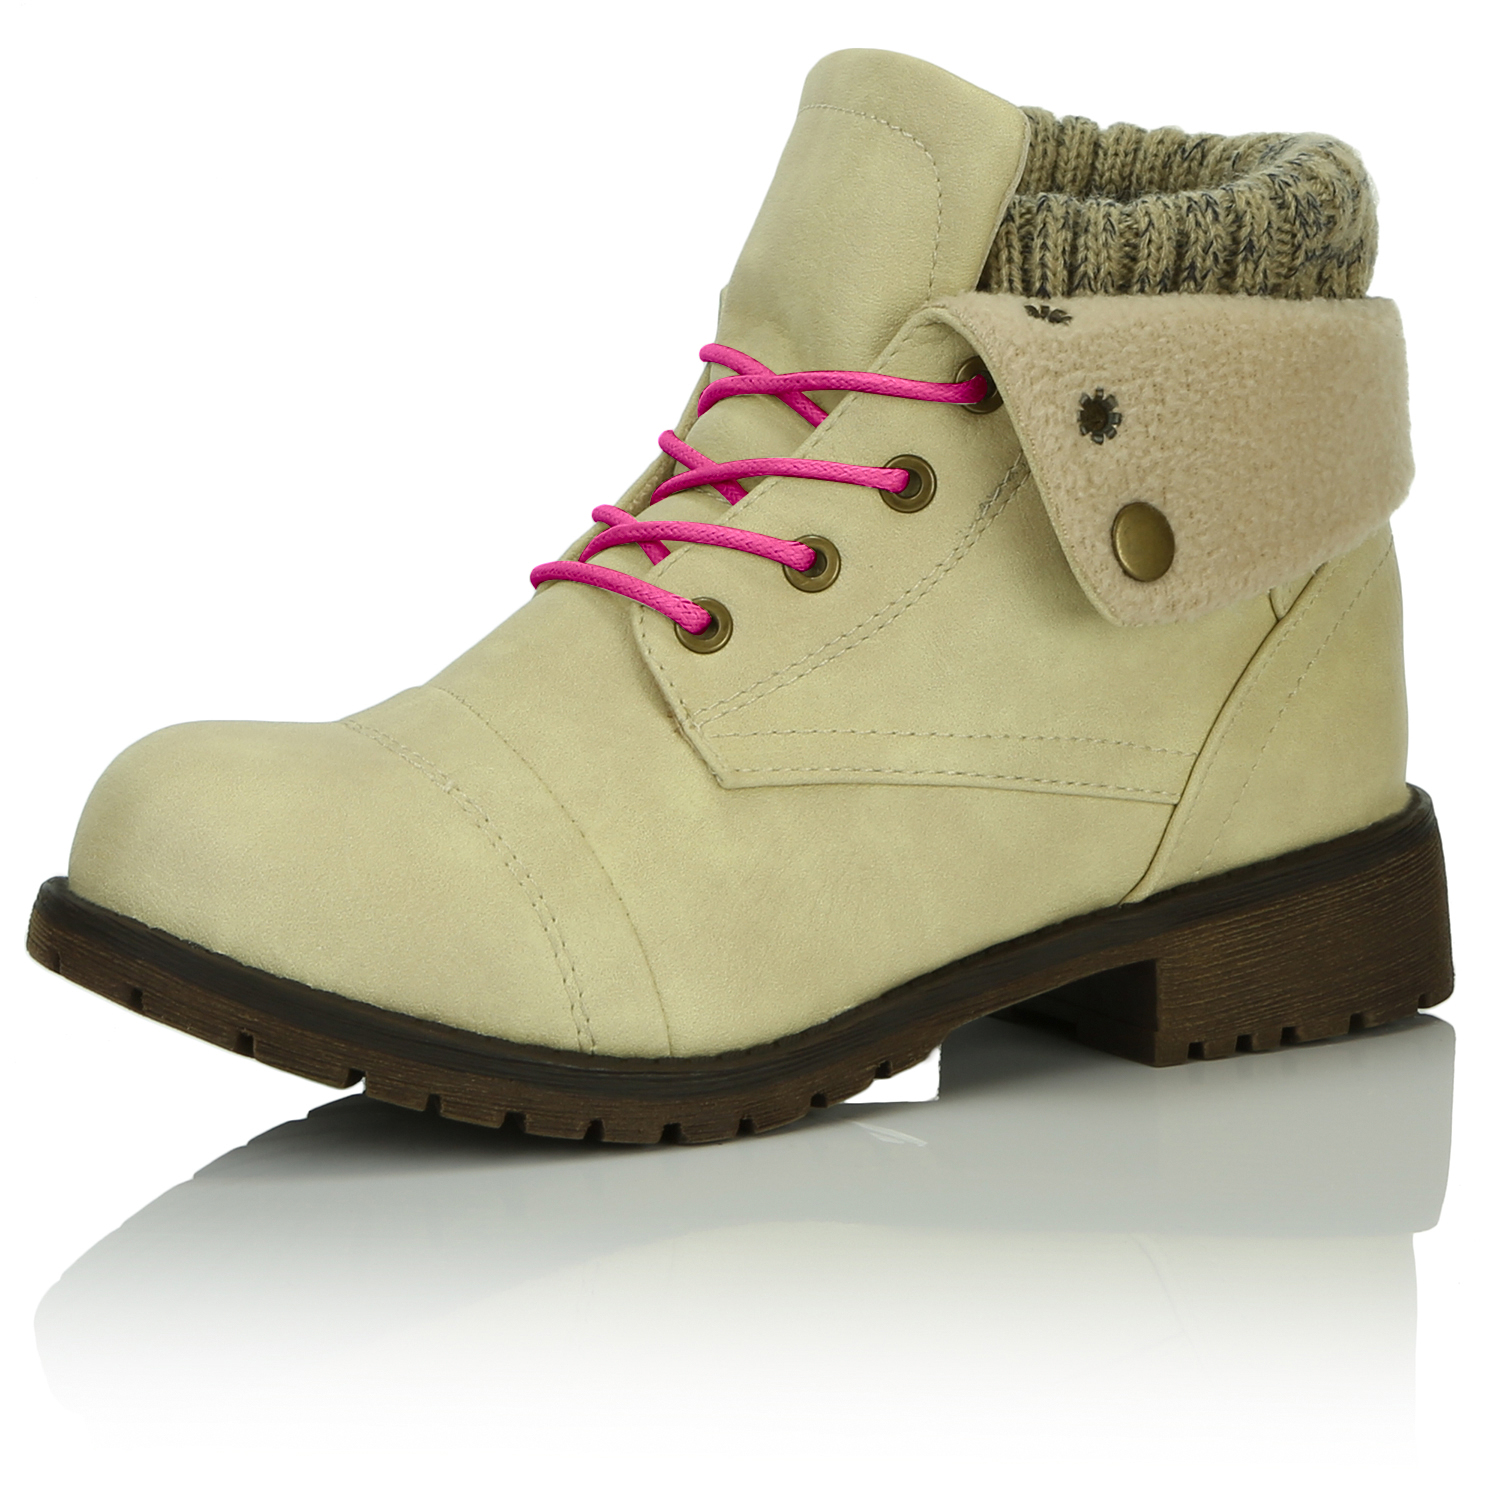 DailyShoes - DailyShoes Fancy Boots for